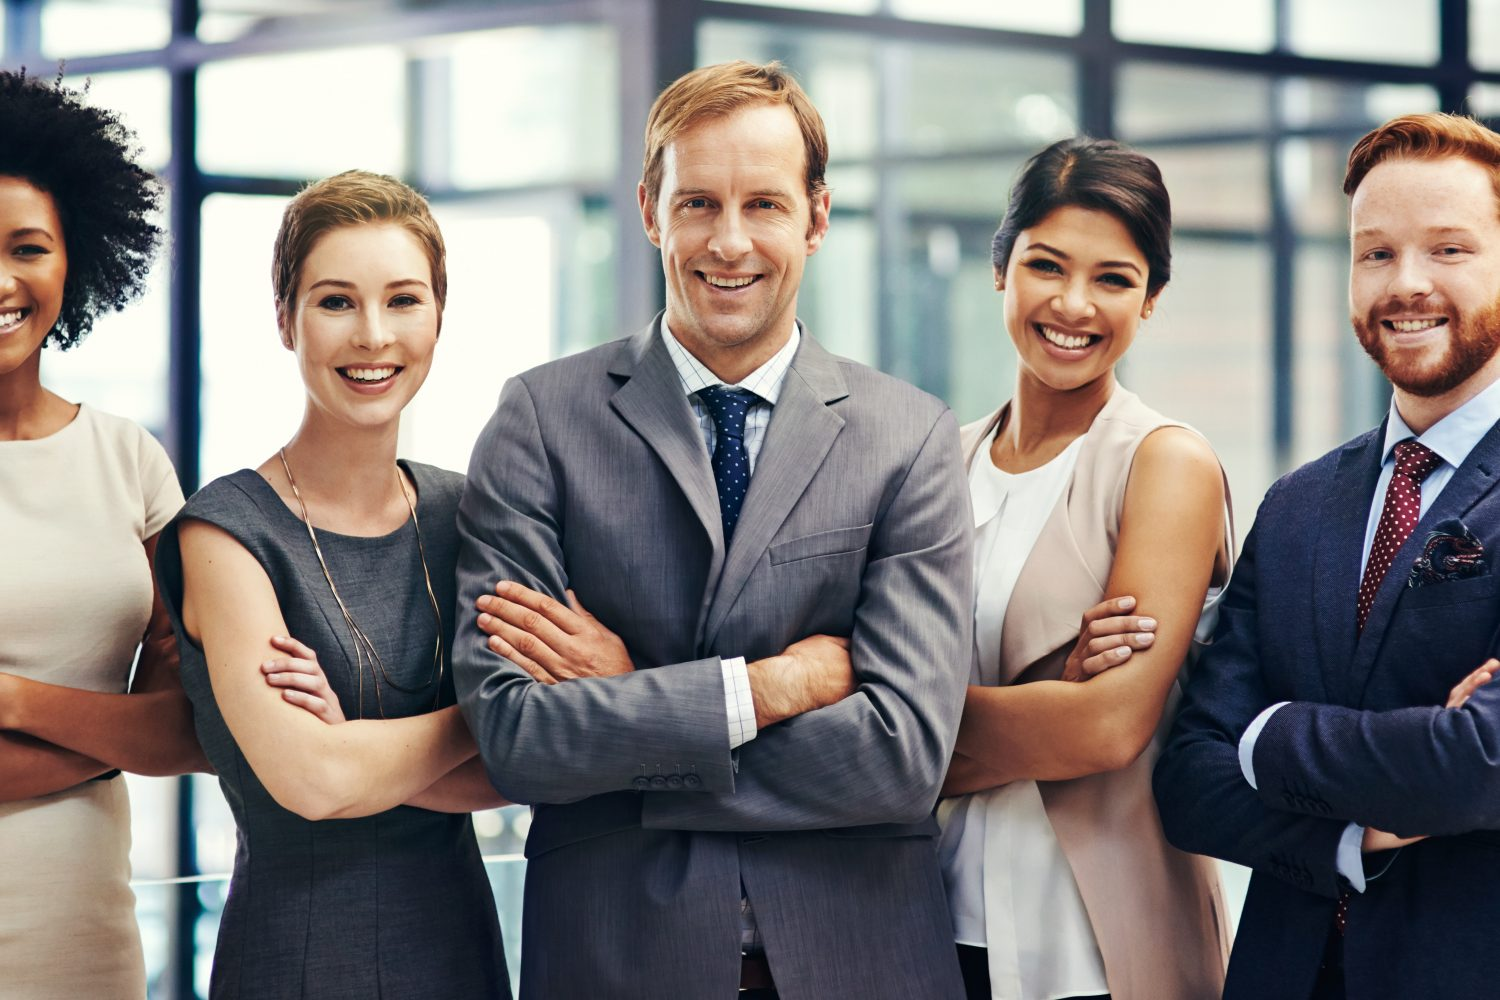 Portrait of a group of colleagues standing together in an office